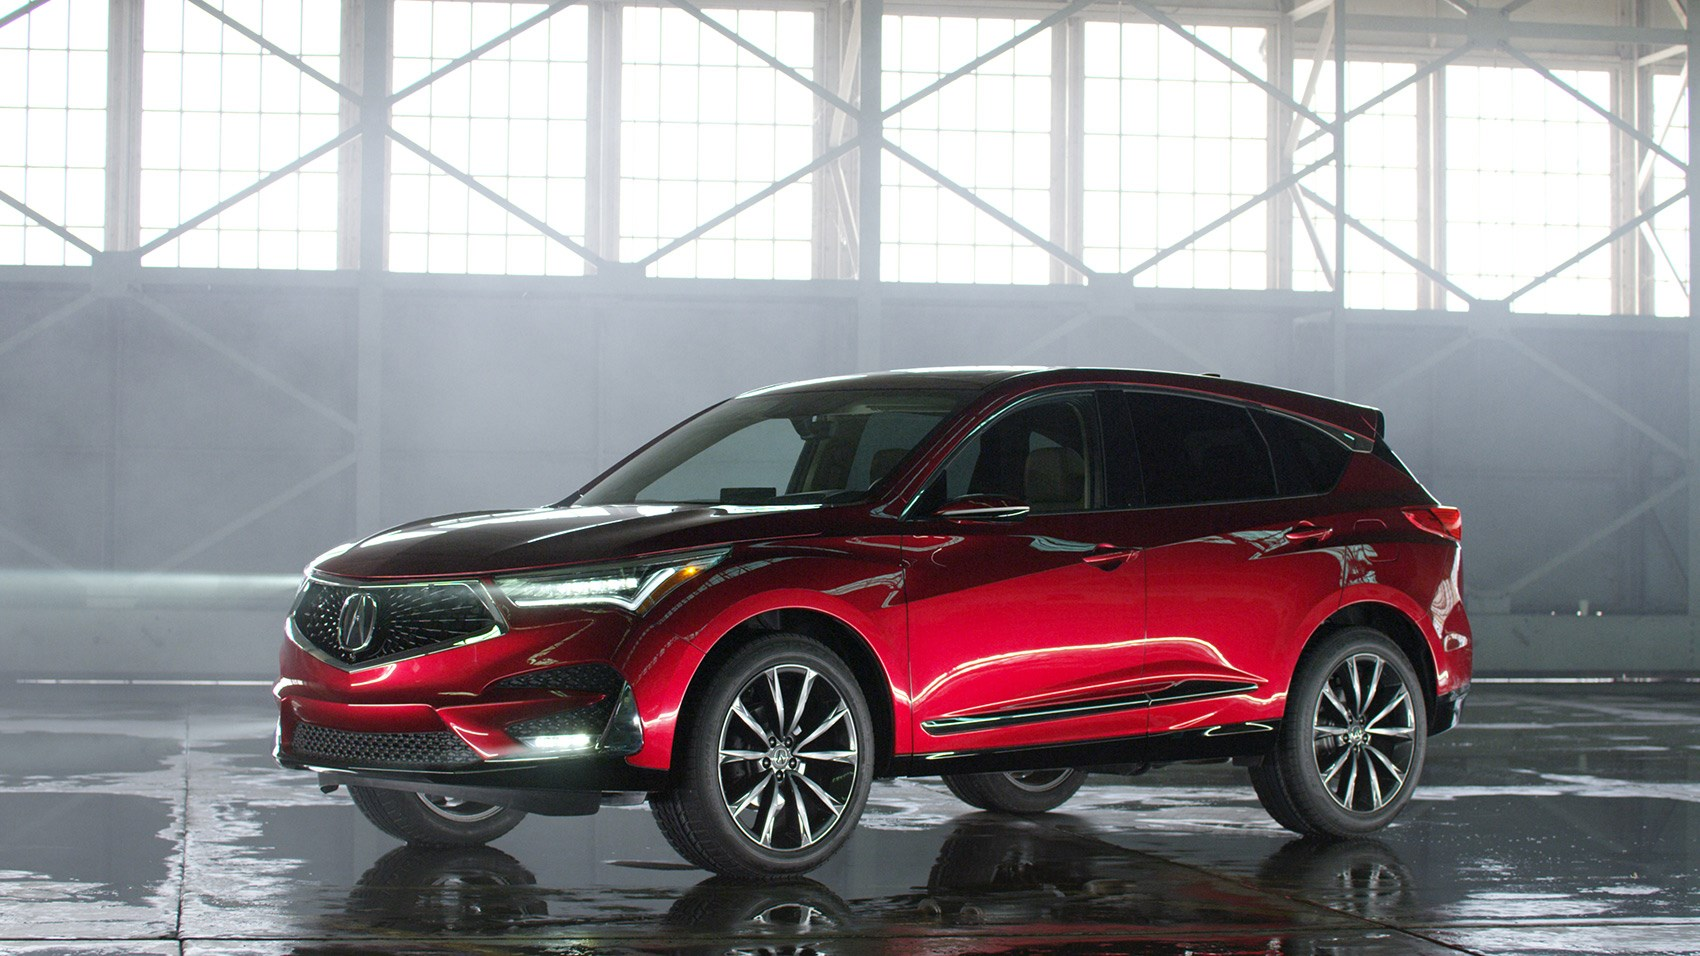 2015 Acura Rdx For Sale >> Acura RDX Prototype at 2018 Detroit motor show | CAR Magazine